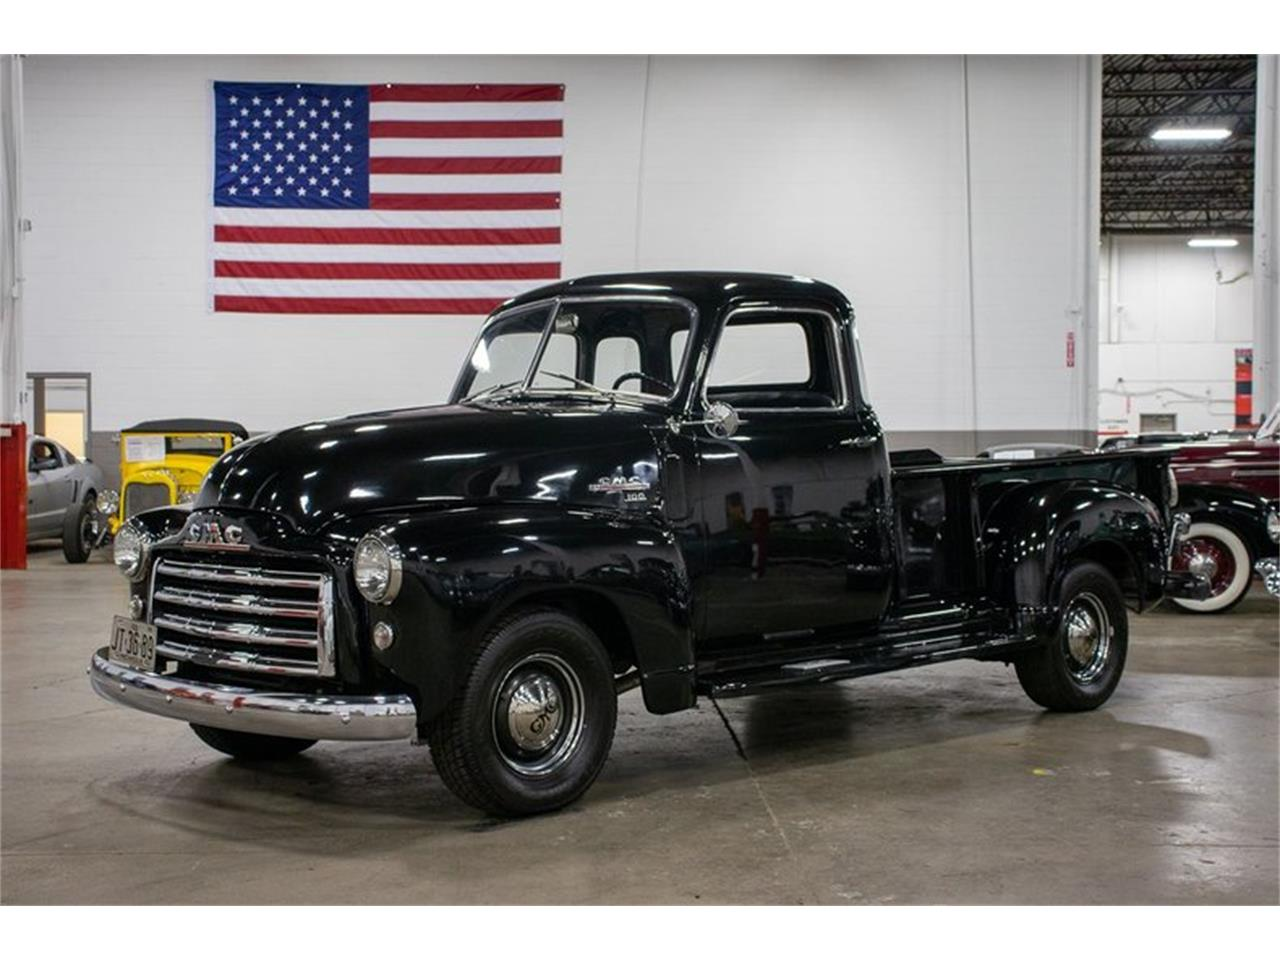 for sale 1950 gmc 100 in kentwood, michigan cars - grand rapids, mi at geebo